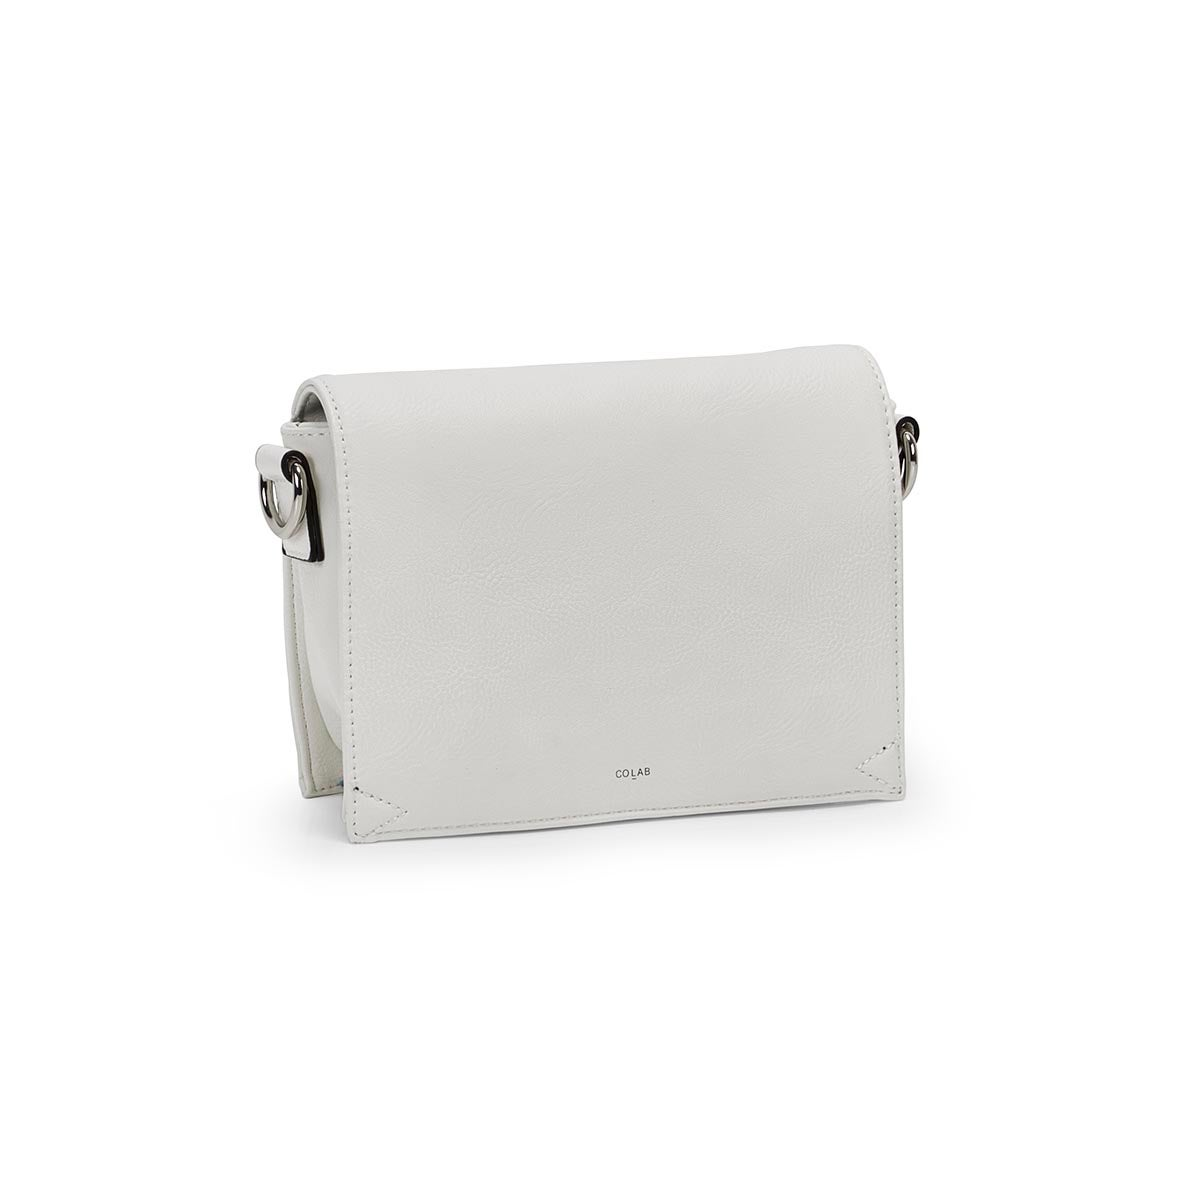 Lds white front flap crossbody bag